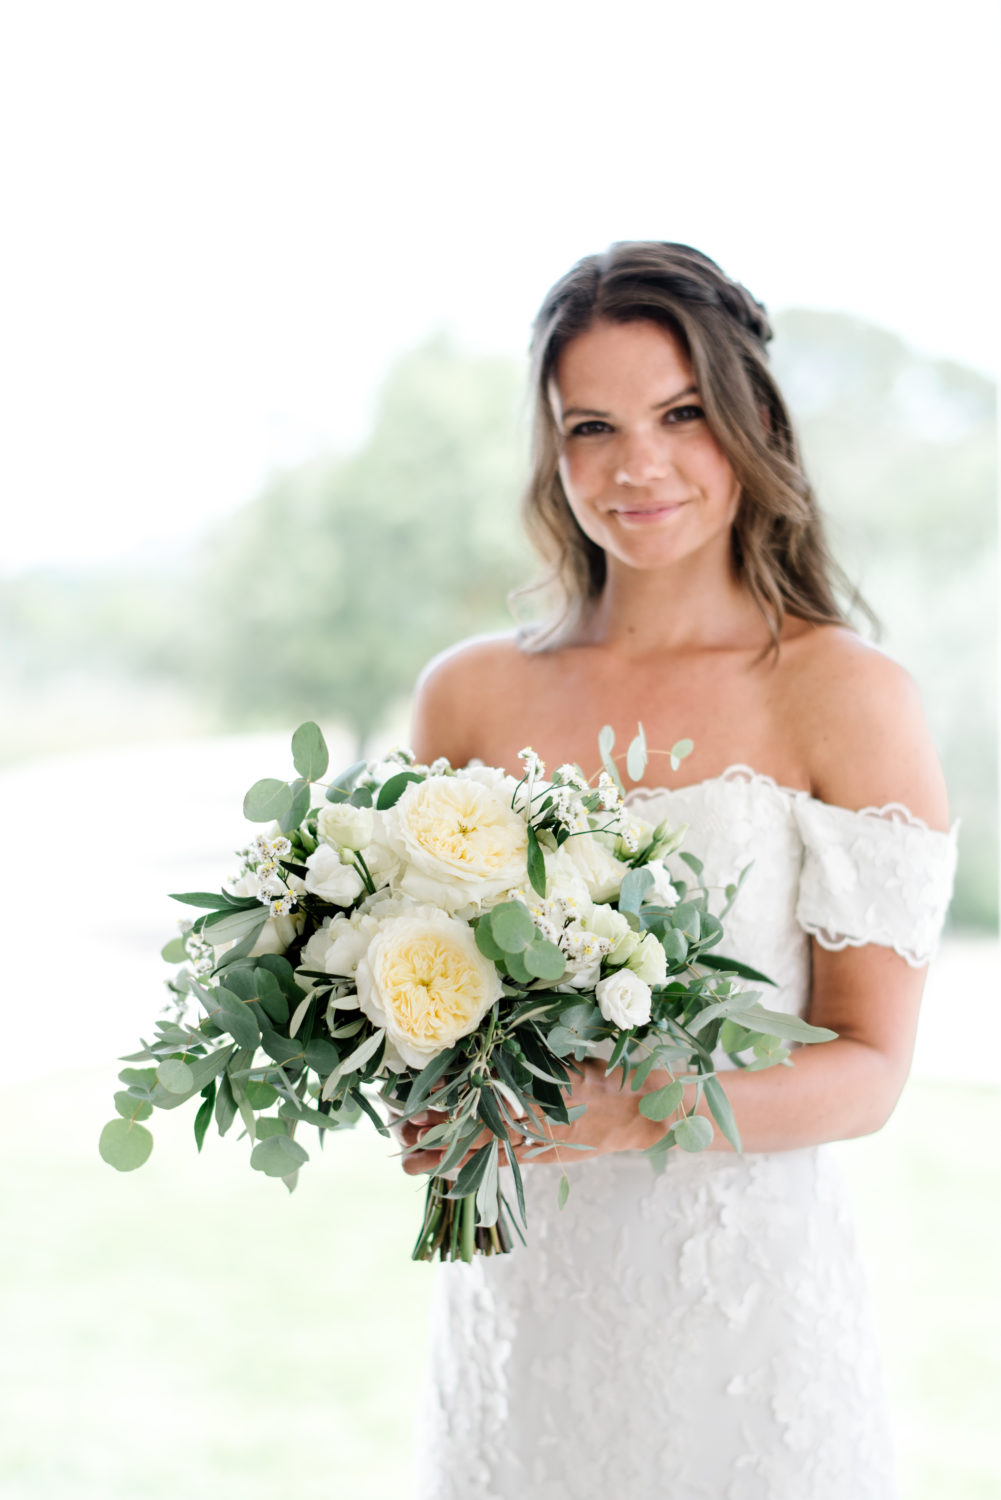 7 consejos para elegir bien tu ramo de novia / 7 Tips on choosing your perfect bridal bouquet